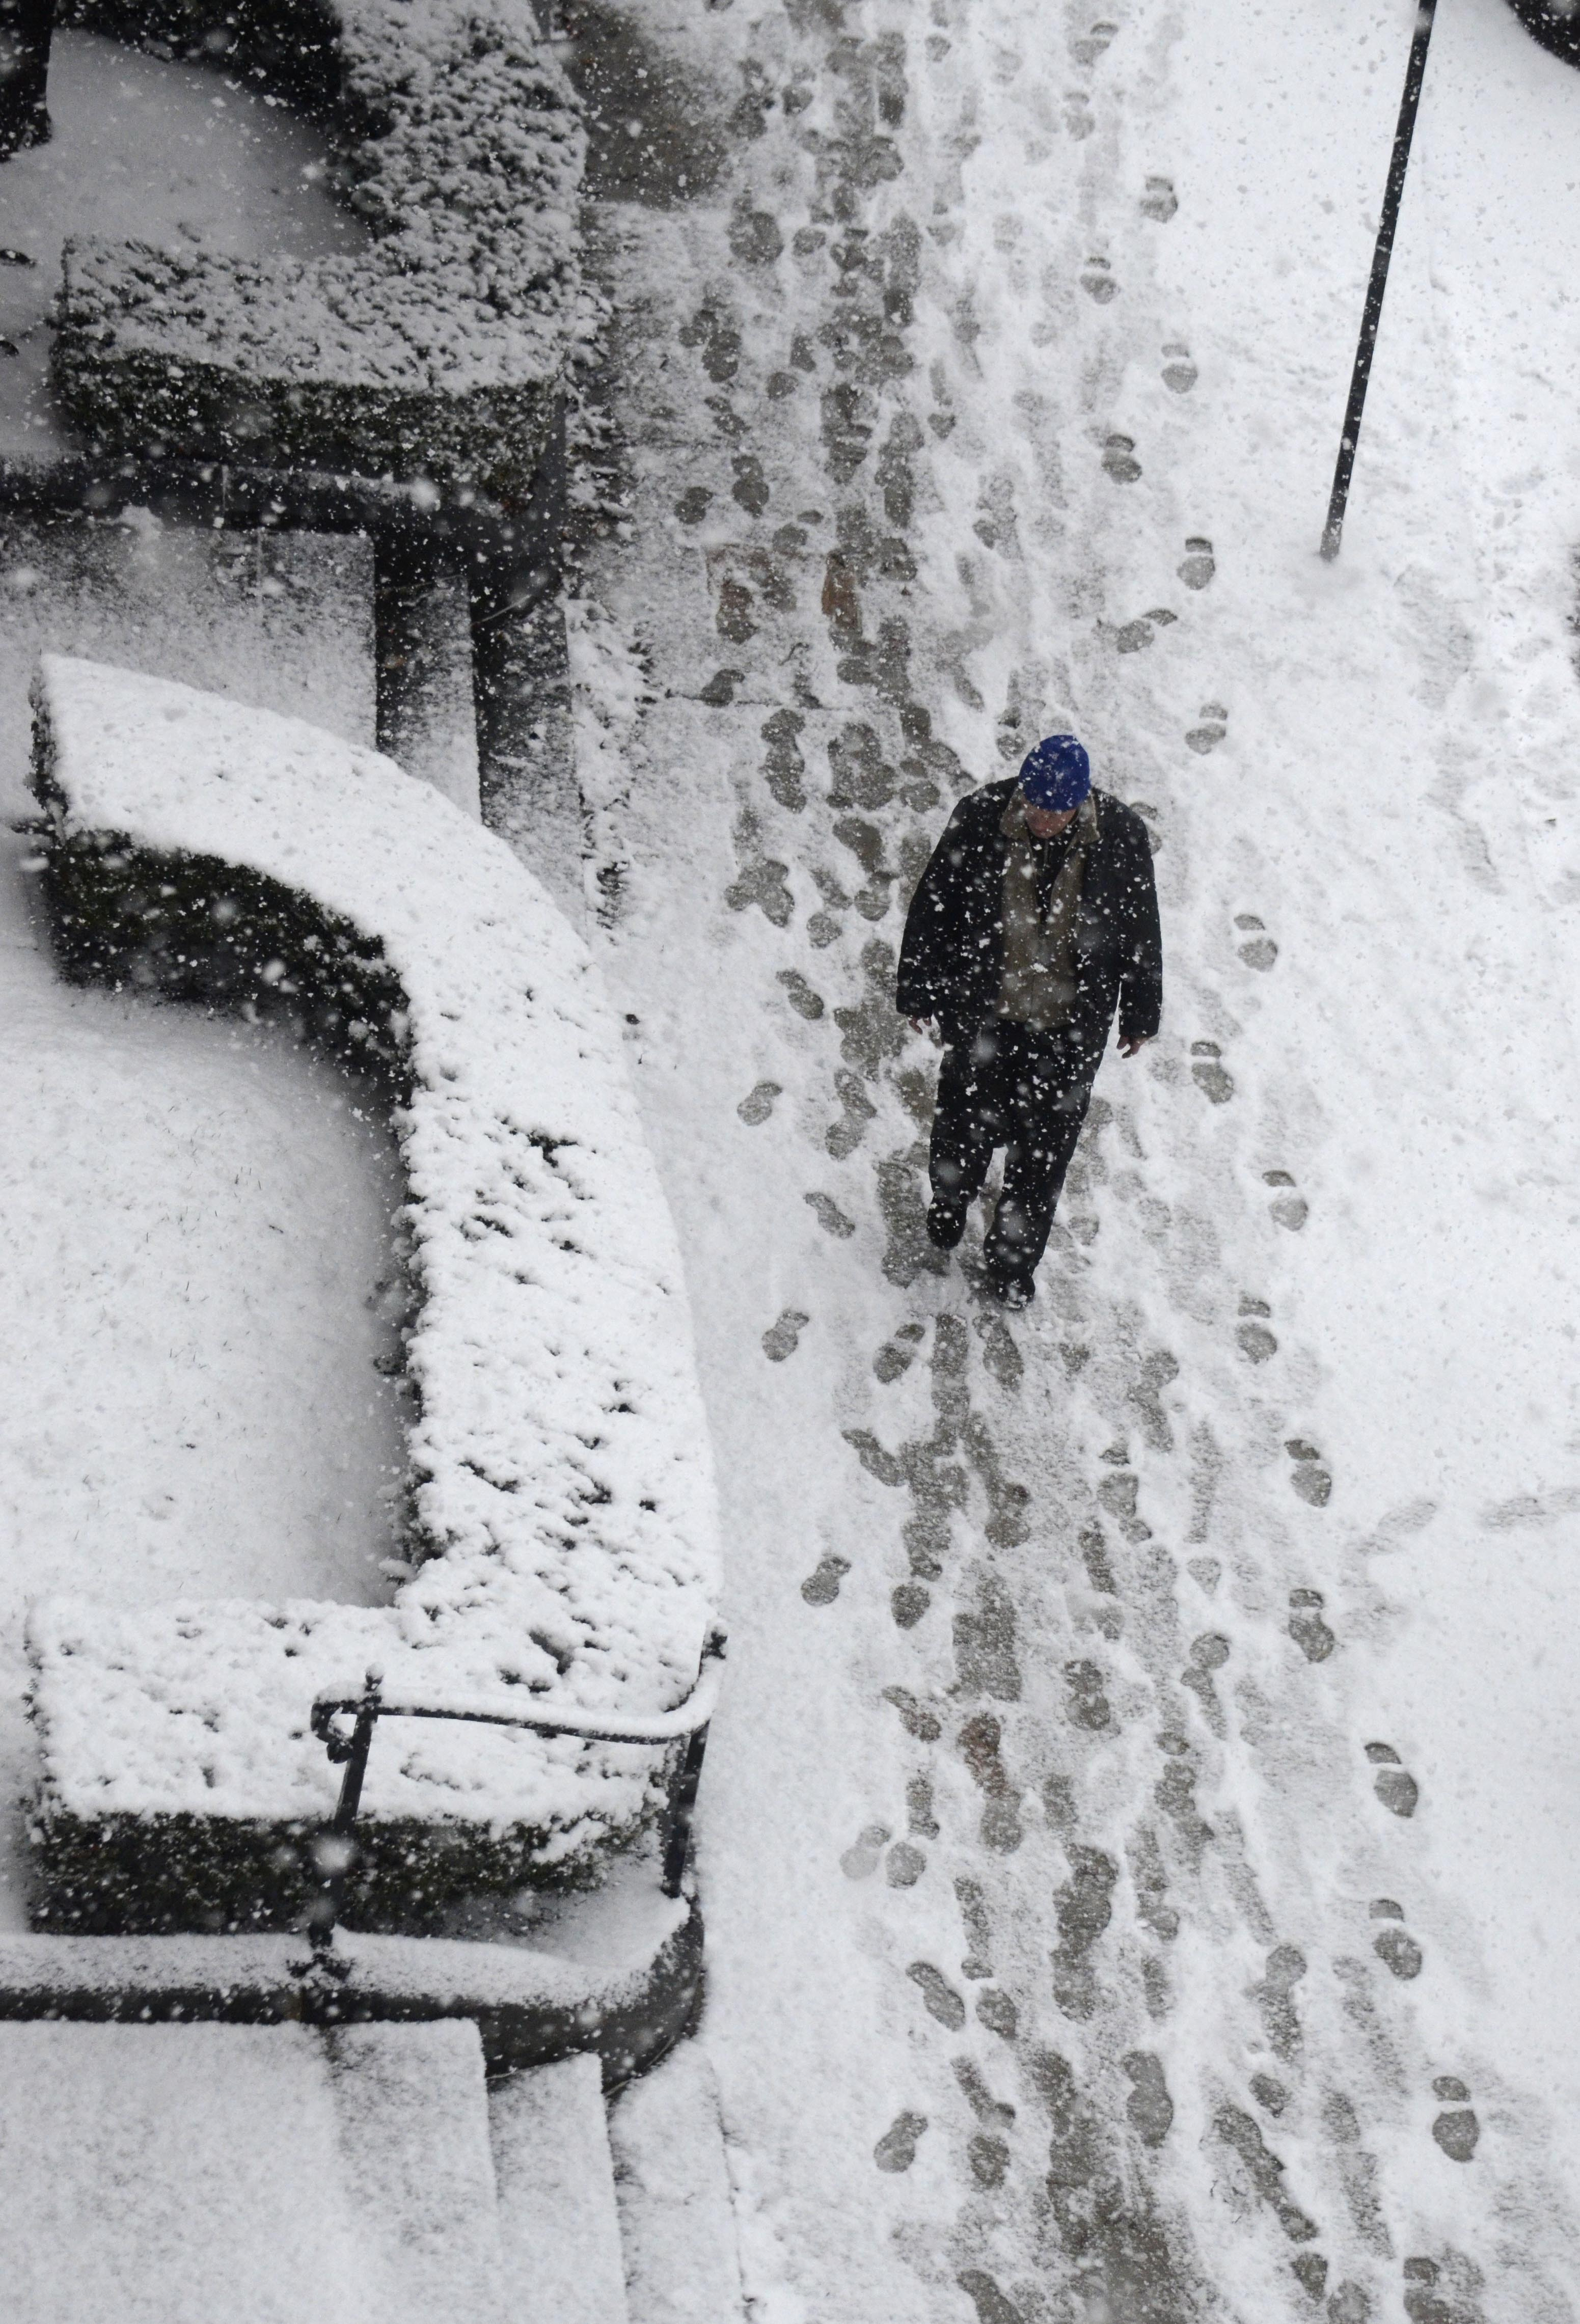 A man walks in snow in Pittsfield, Mass., as snow accumulates on the sidewalk on Dec. 10, 2014.